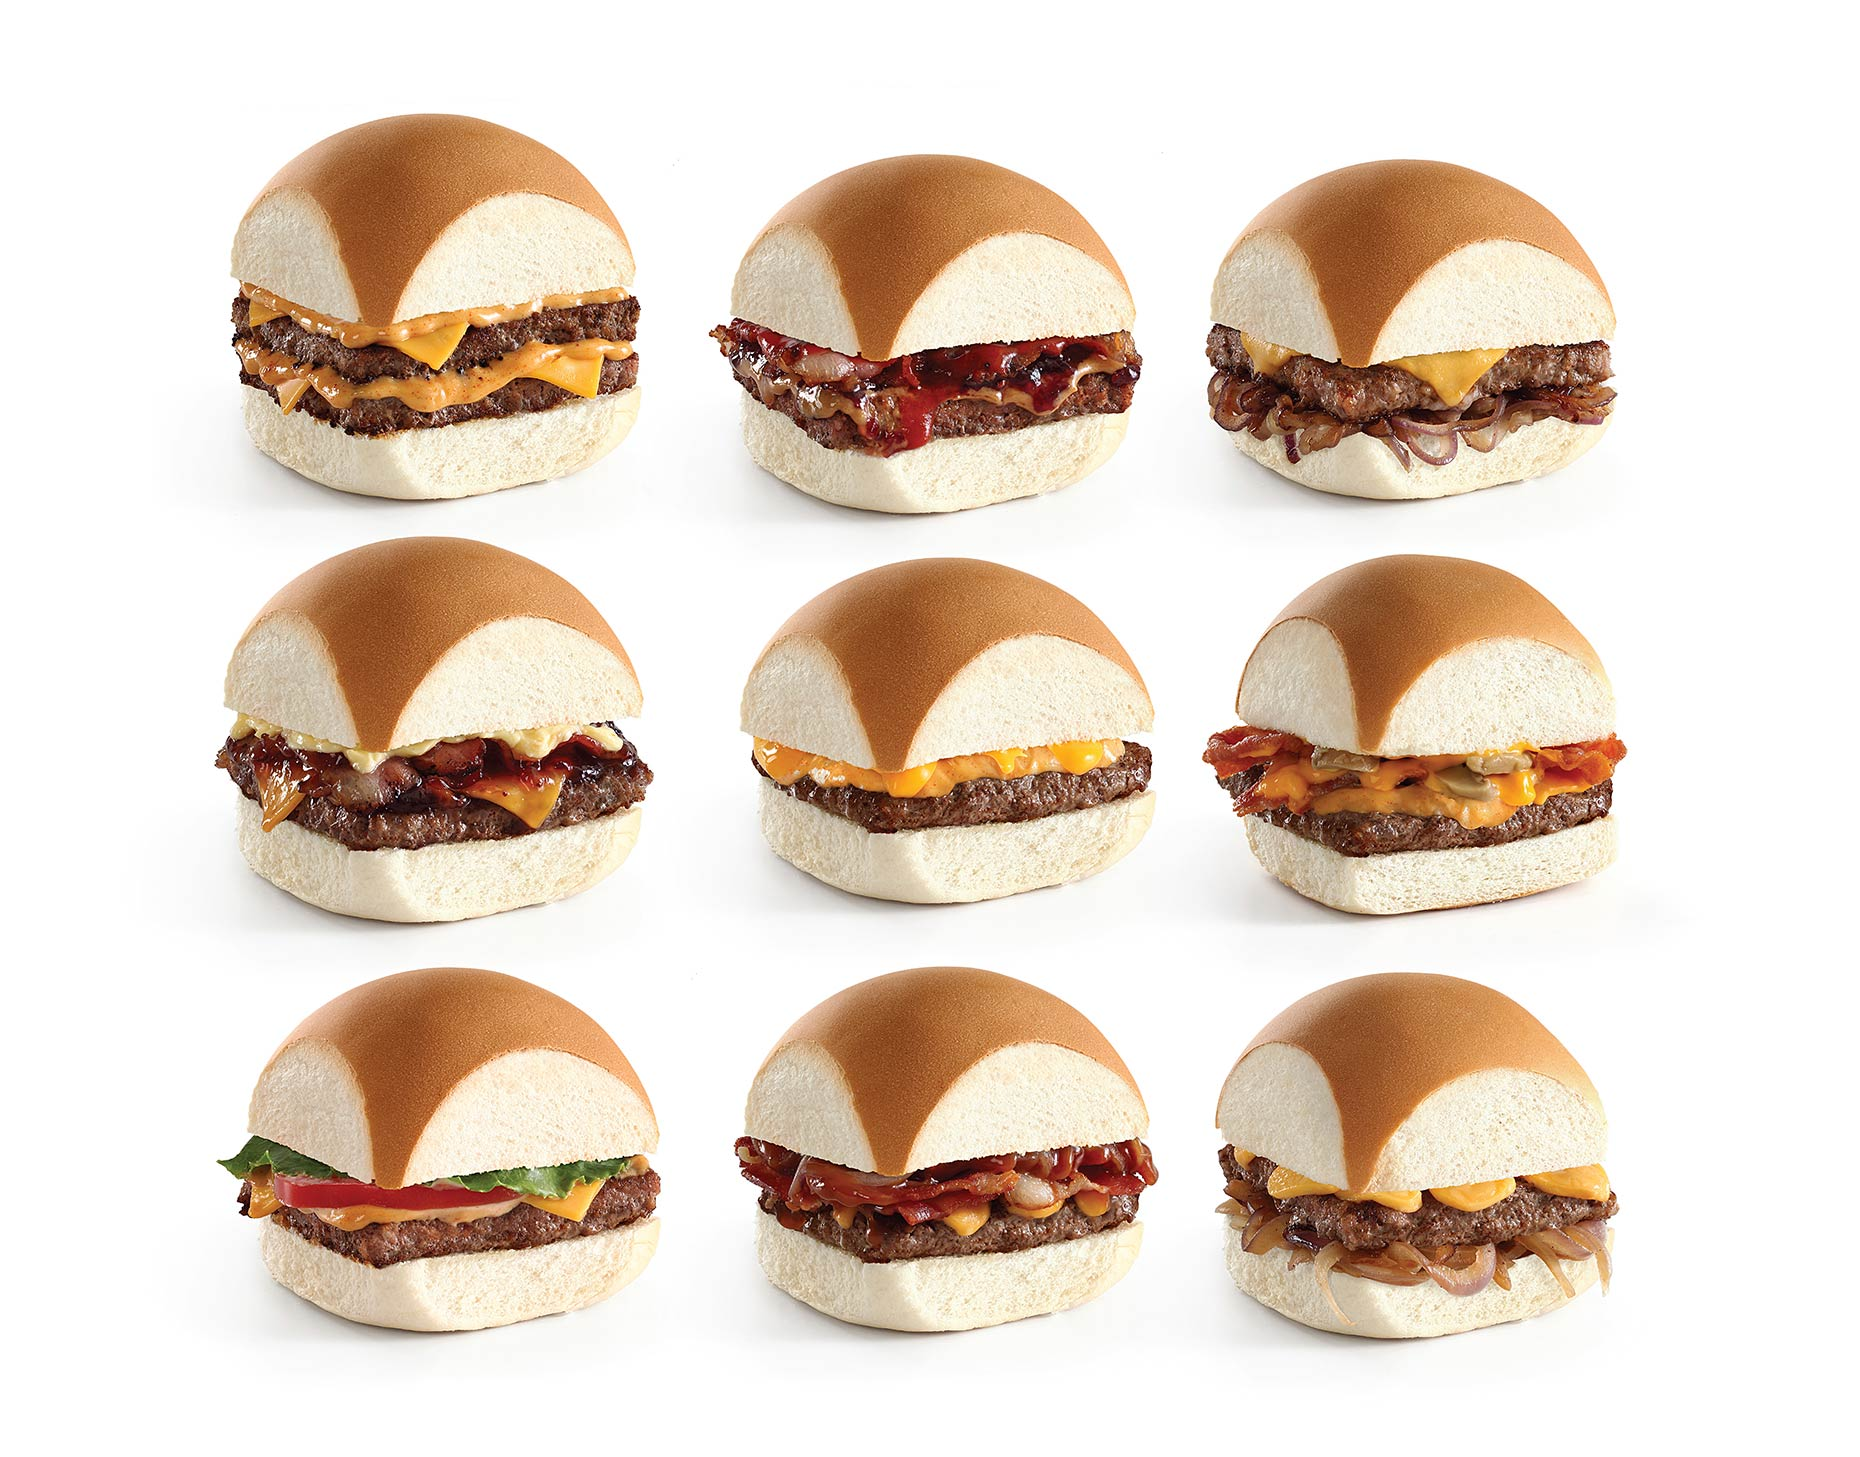 burgers composite images on white background